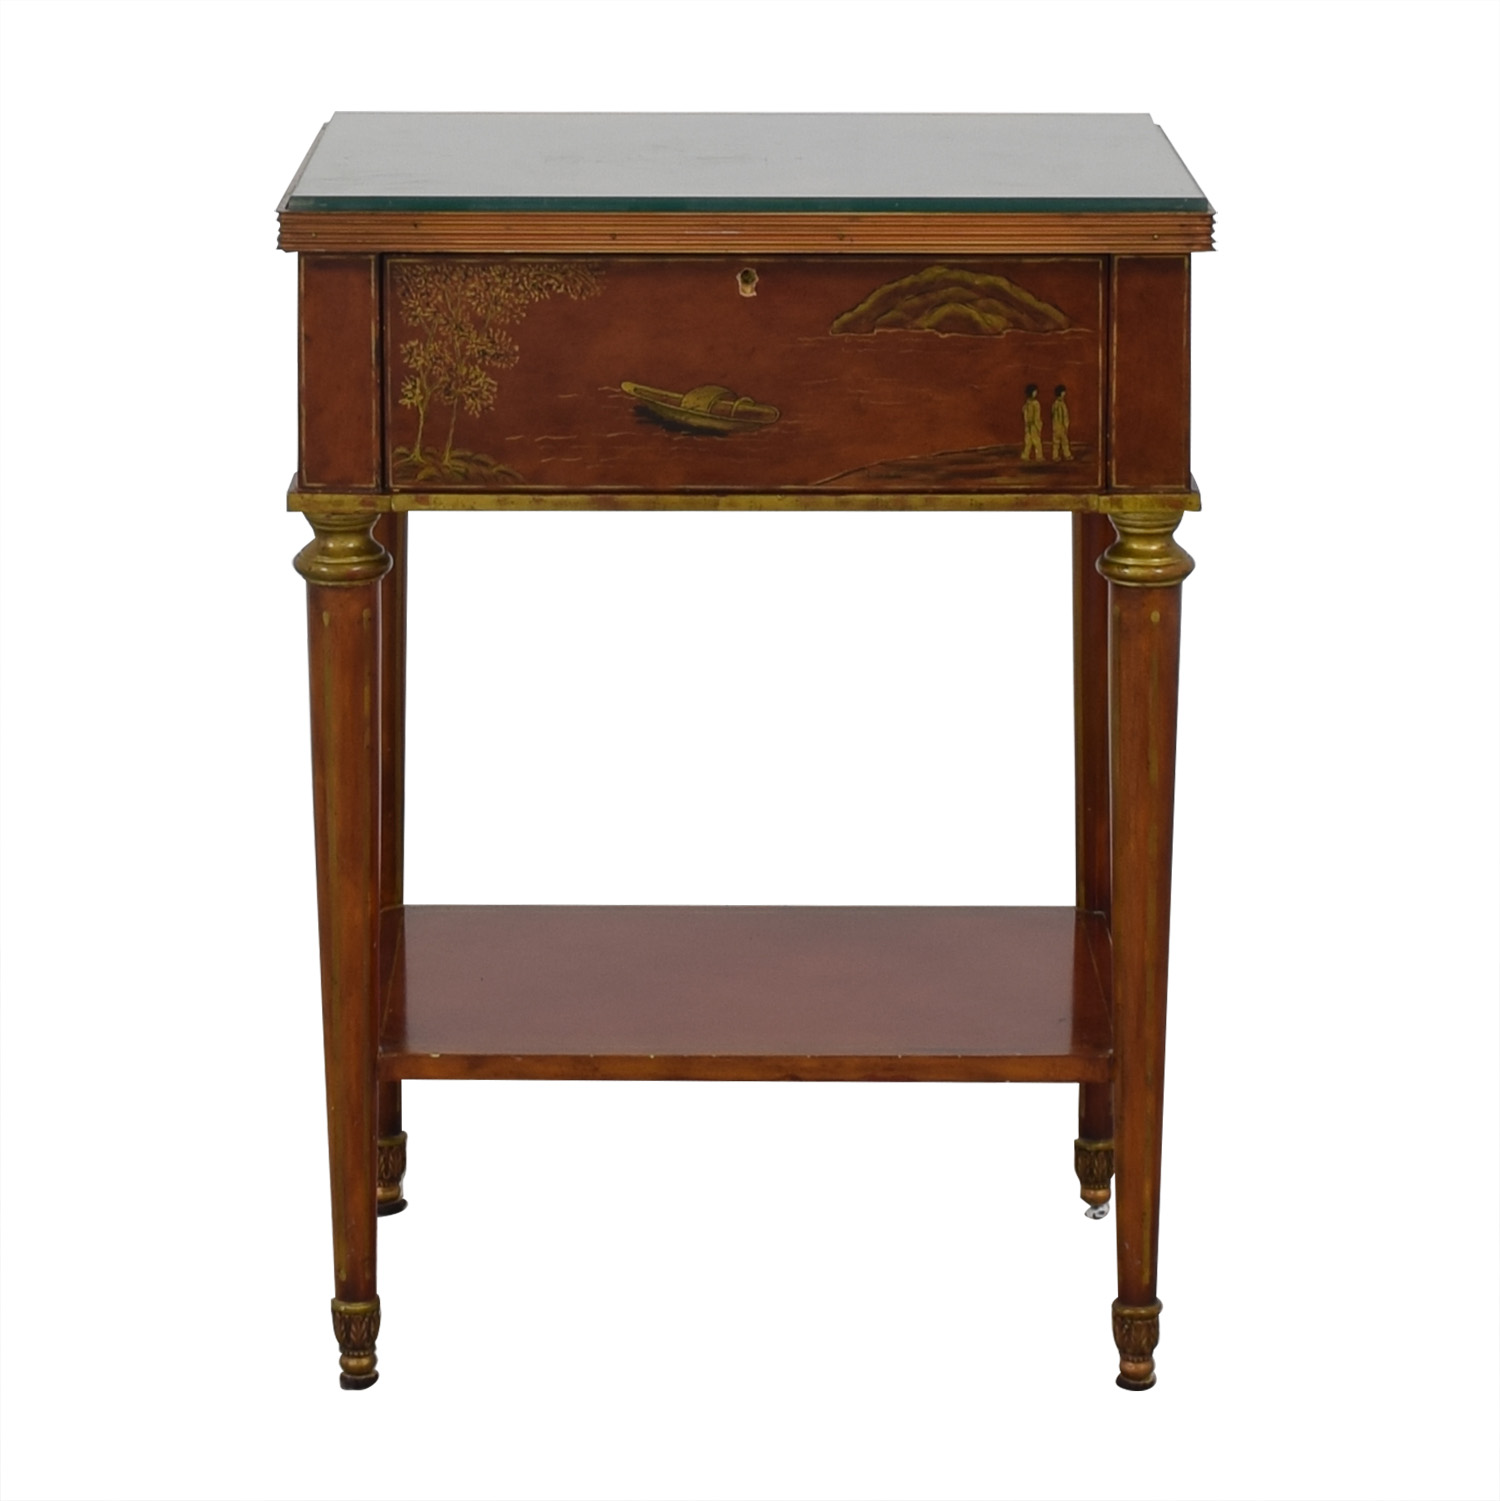 Safavieh Safavieh Glass Top Side Table with Drawer second hand